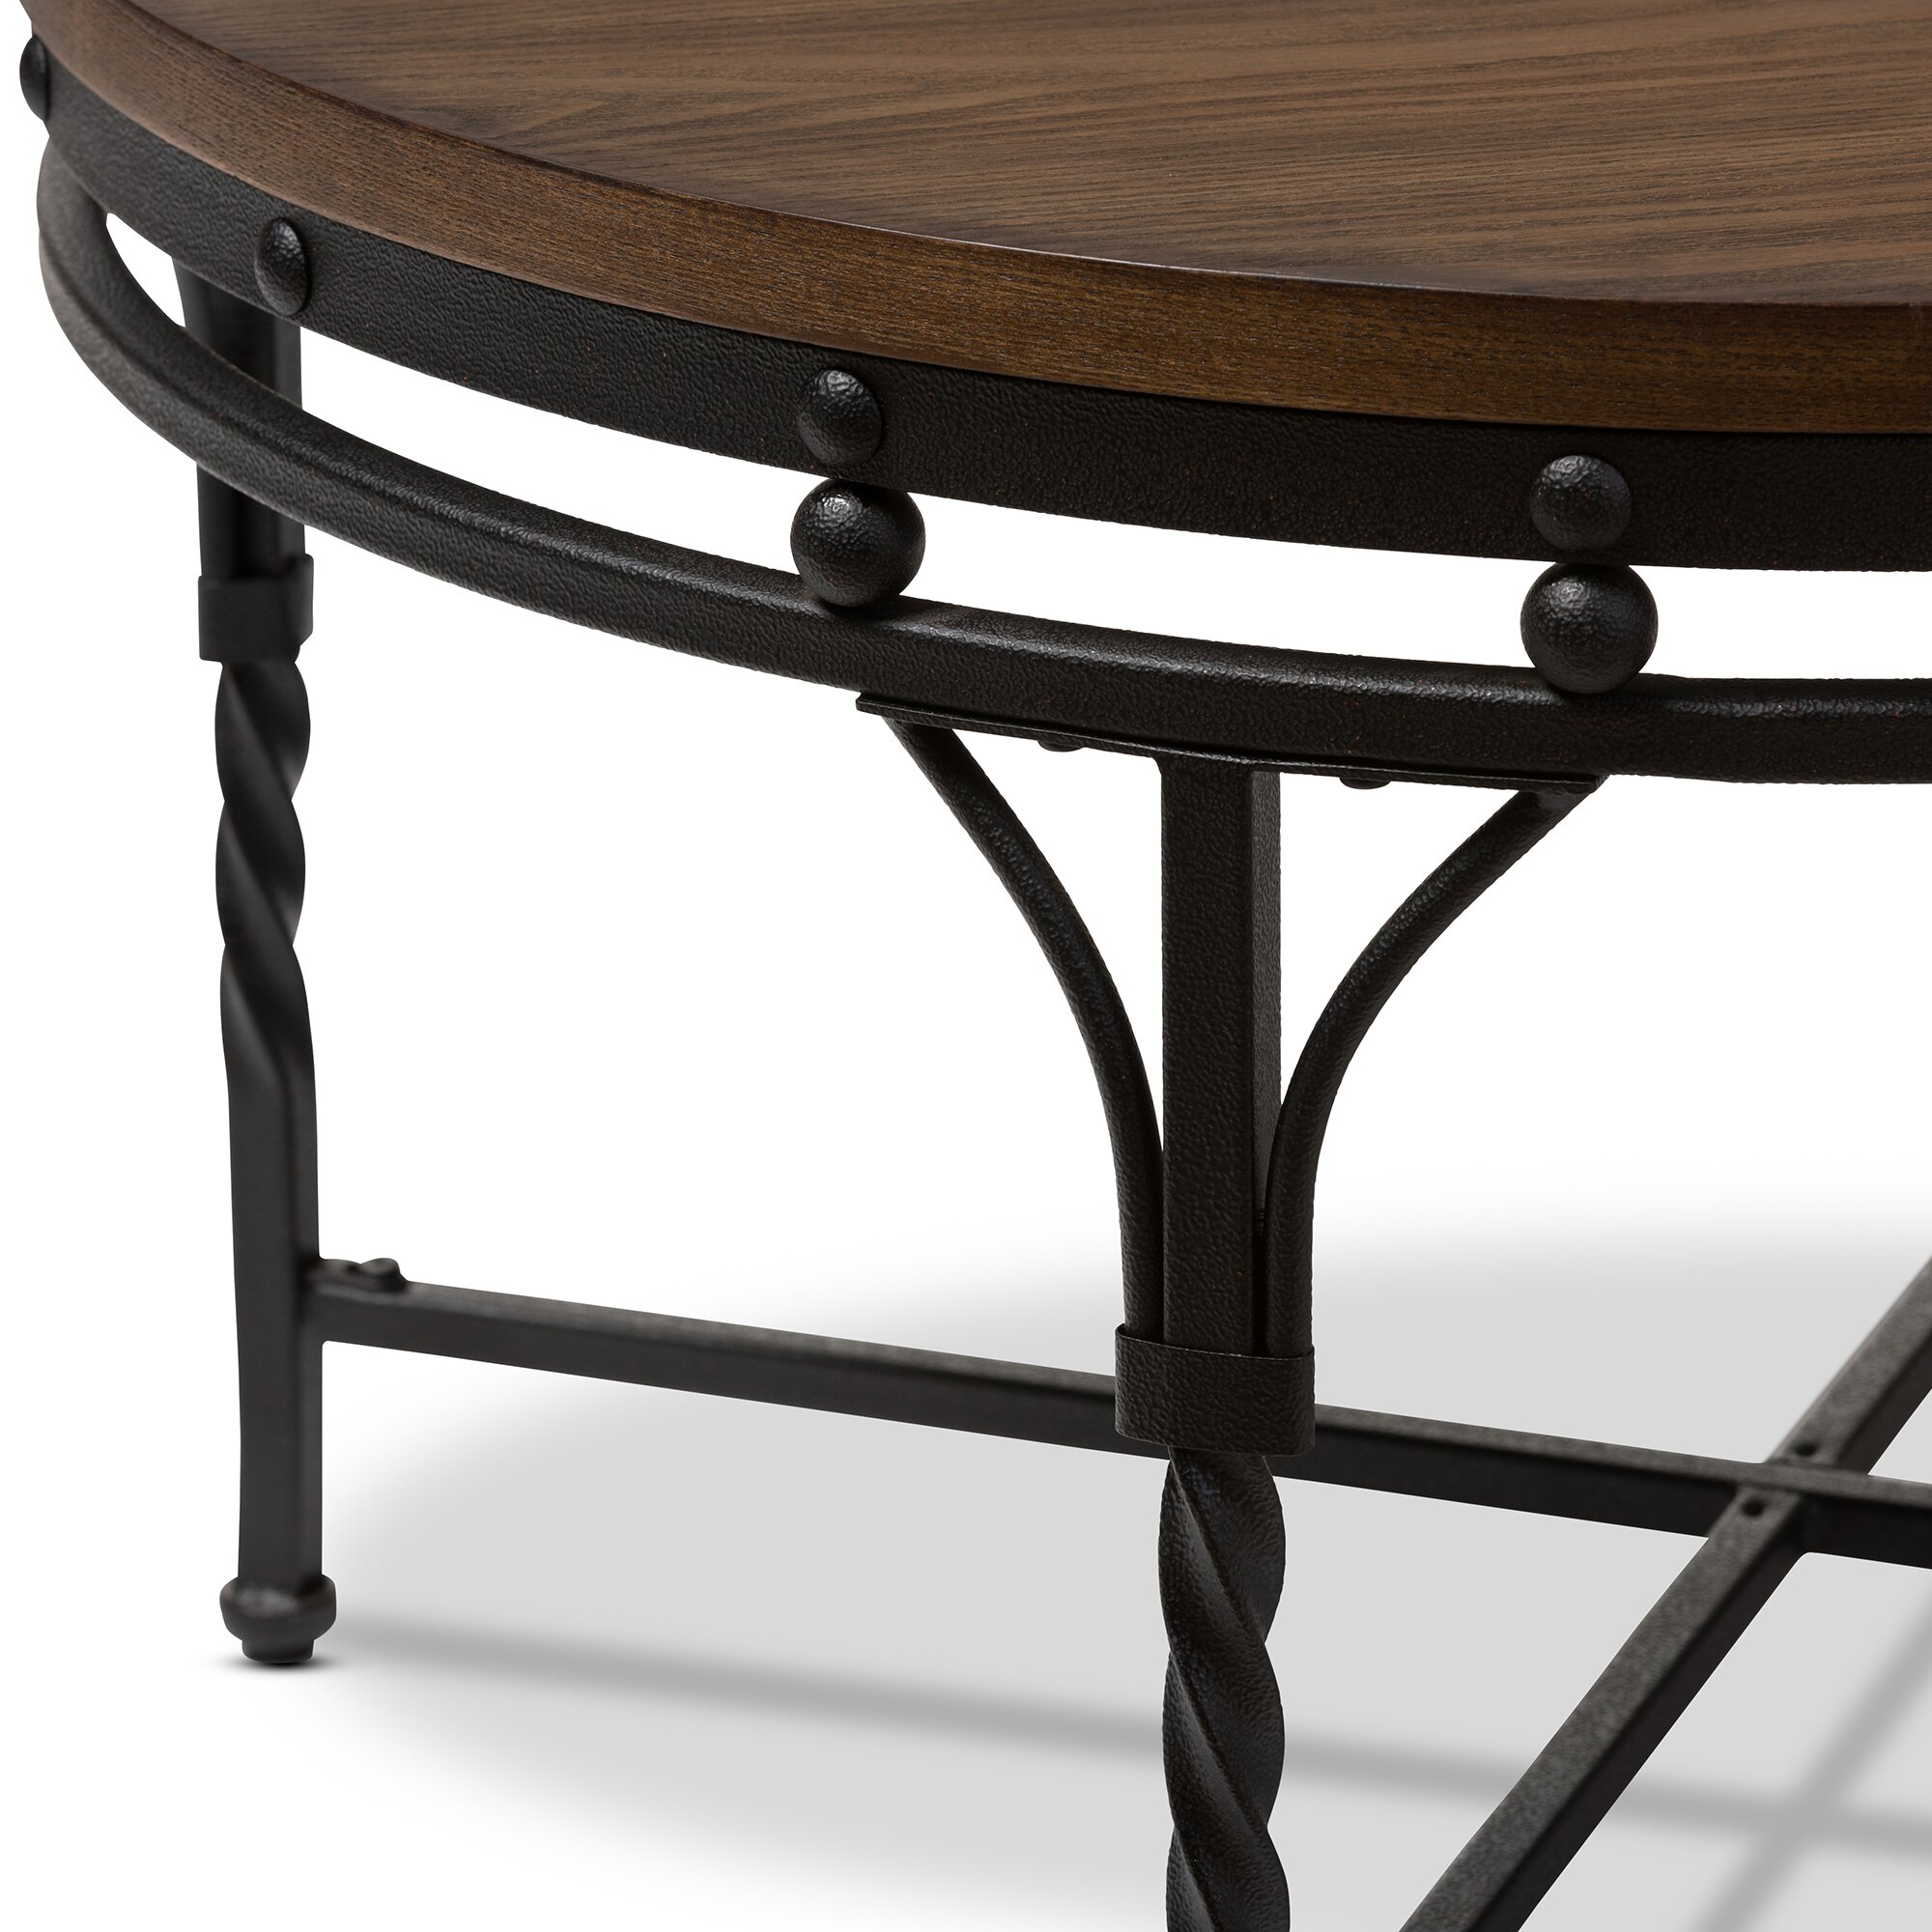 Bronze Industrial Coffee Table: Wholesale Interiors Baxton Studio Coffee Table & Reviews